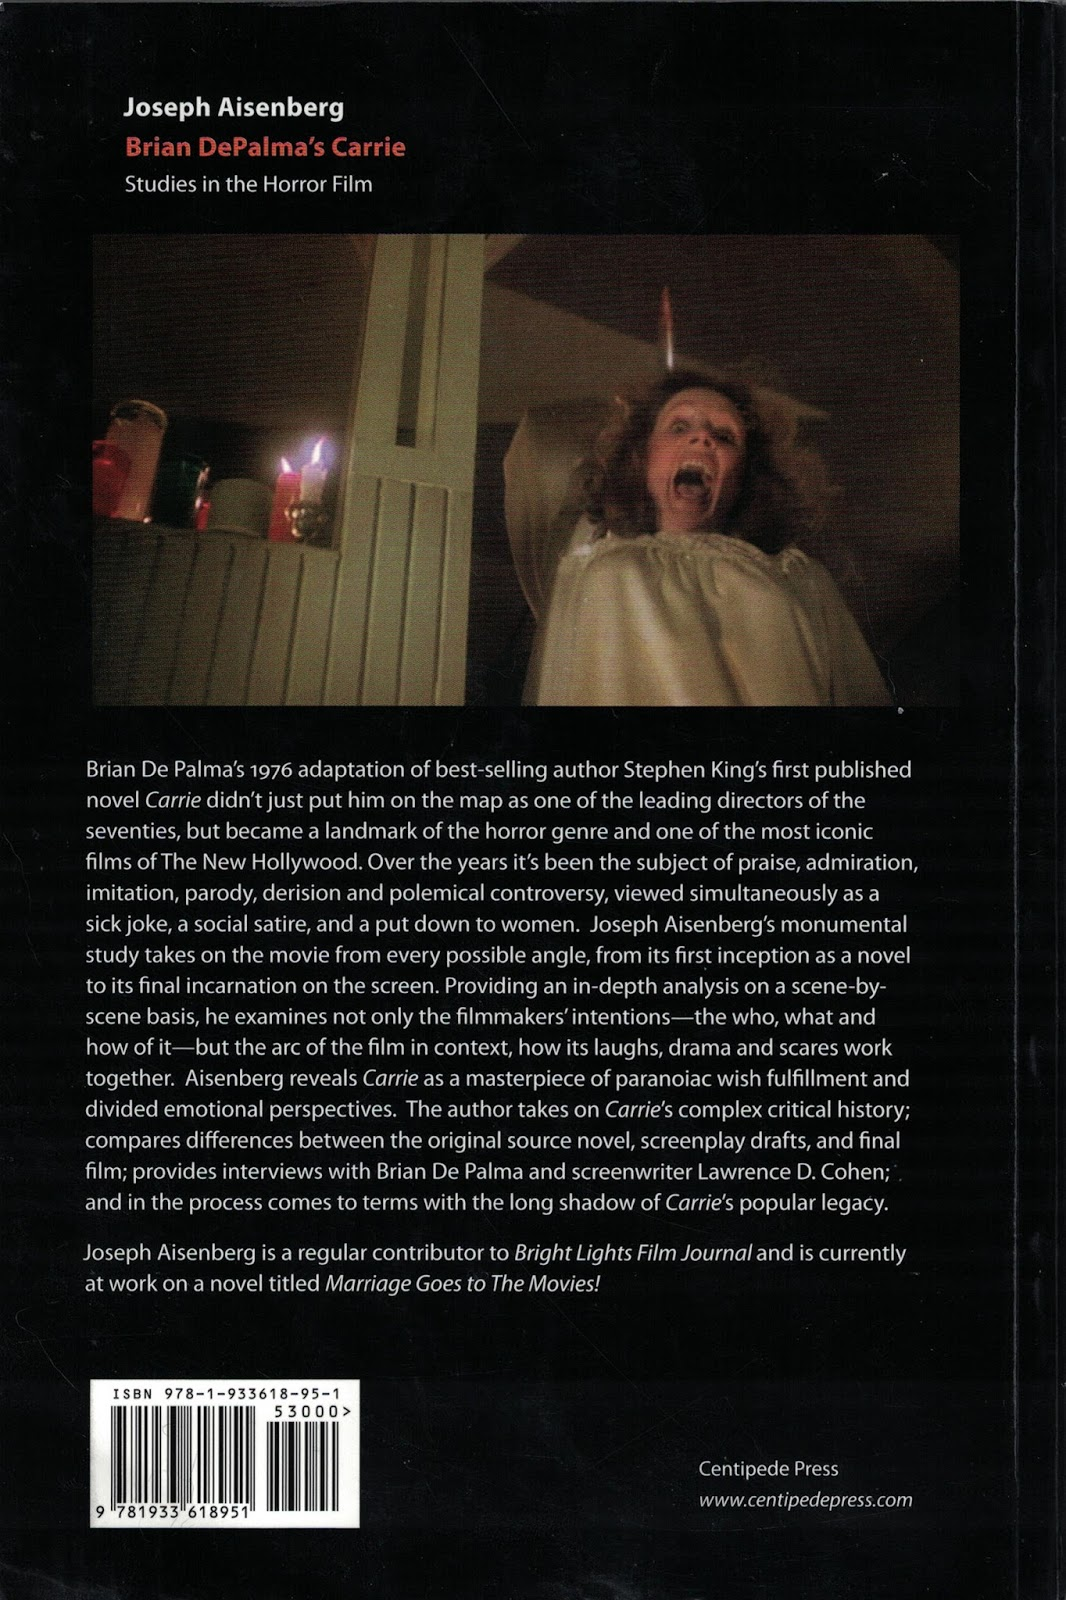 The Truth Inside The Lie A Review Of Studies In The Horror Film Brian De Palma S Carrie